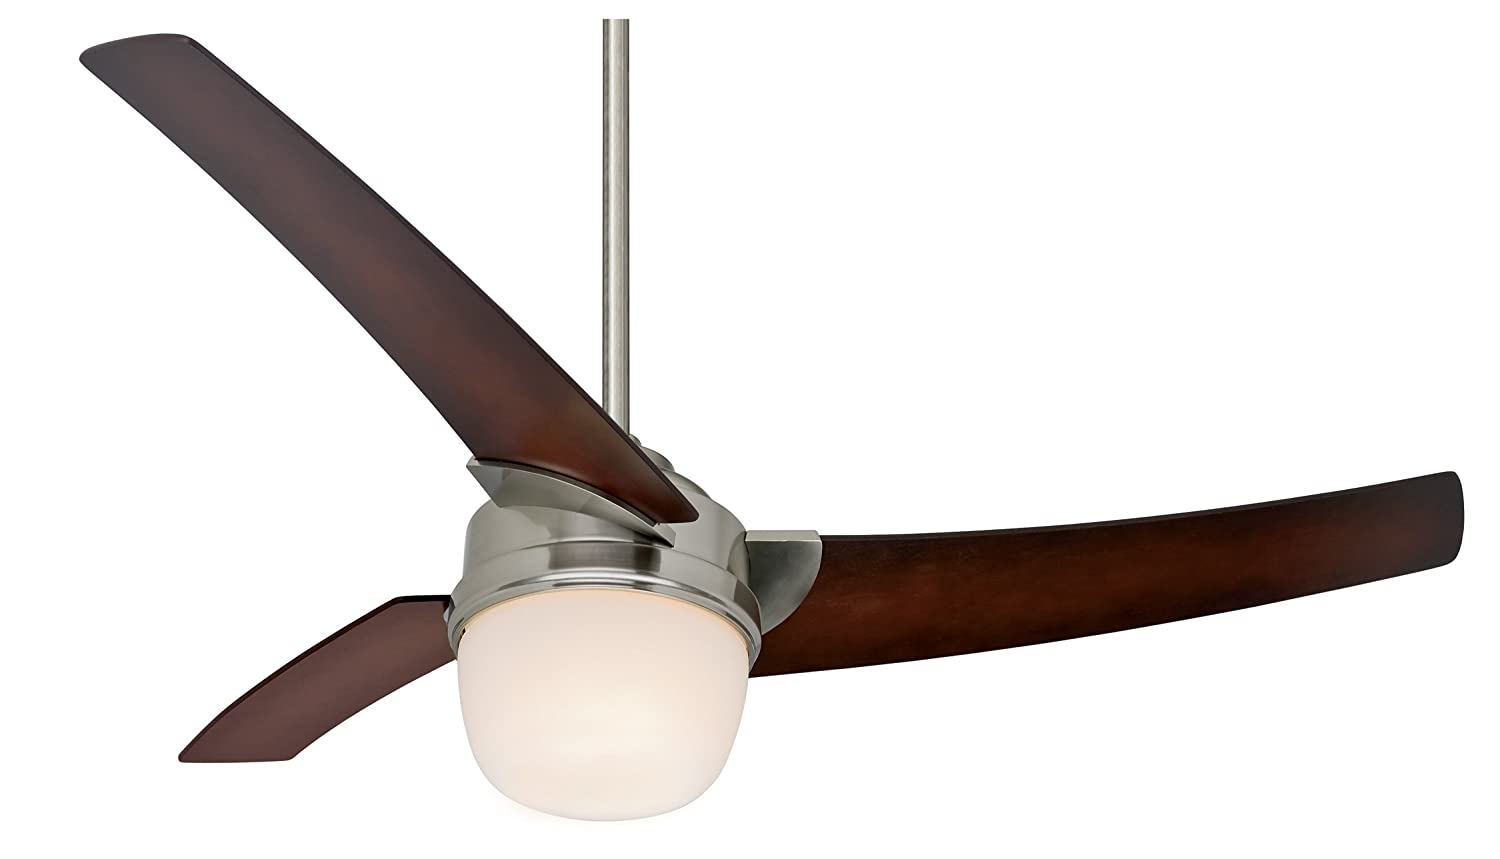 fans ceiling co fan lowes lights patrofi with veloclub blades inch replacement